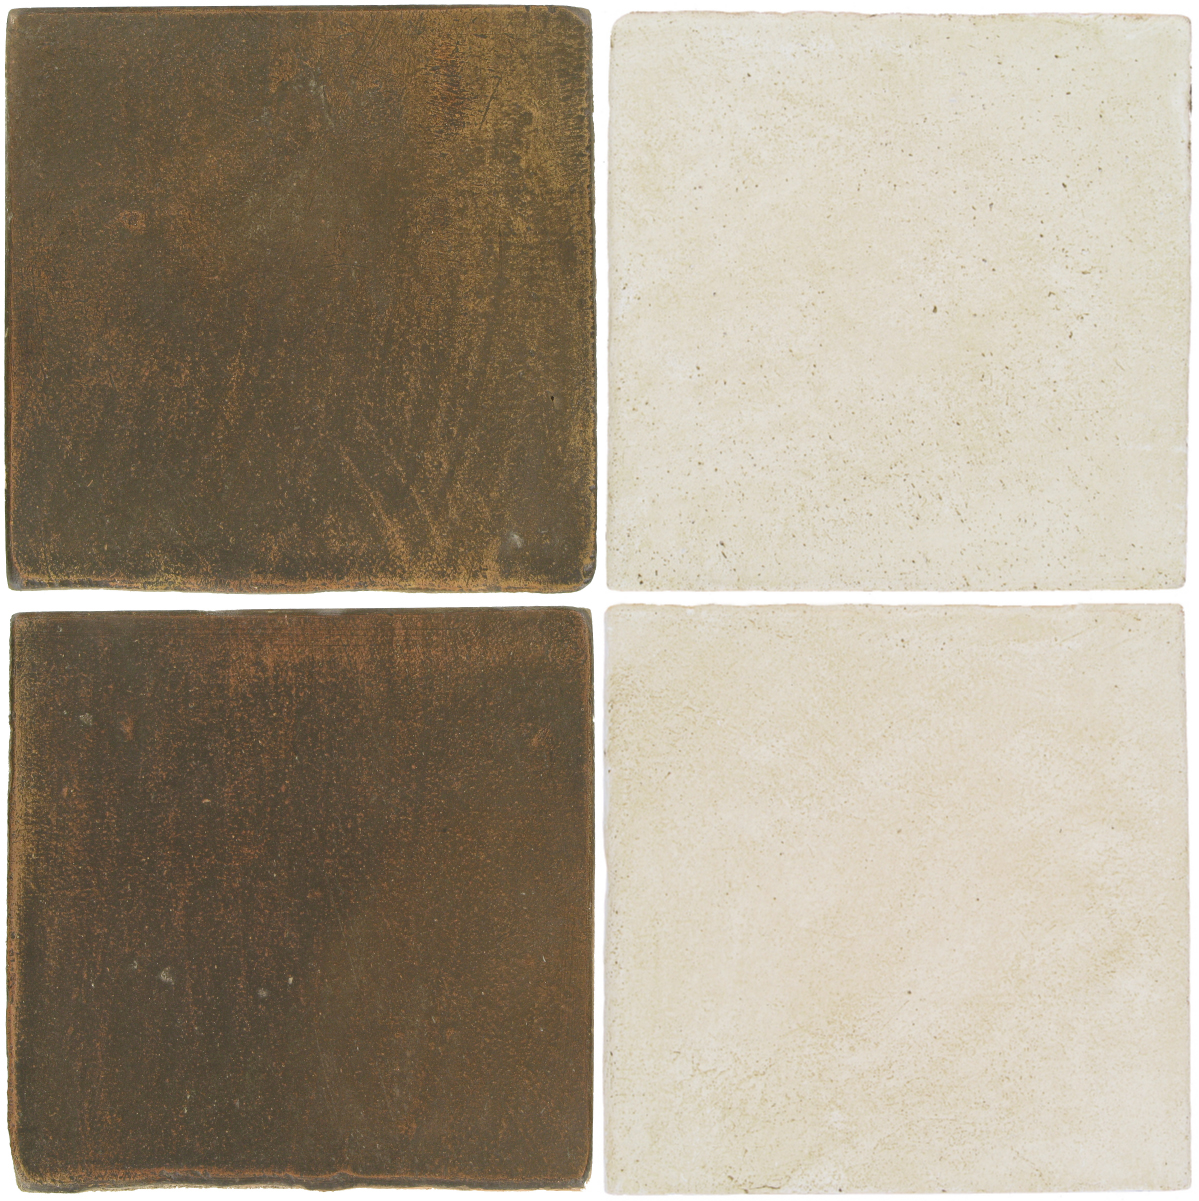 Pedralbes Antique Terracotta  2 Color Combinations  OHS-PSVN Verona Brown + OHS-PGAW Antique White